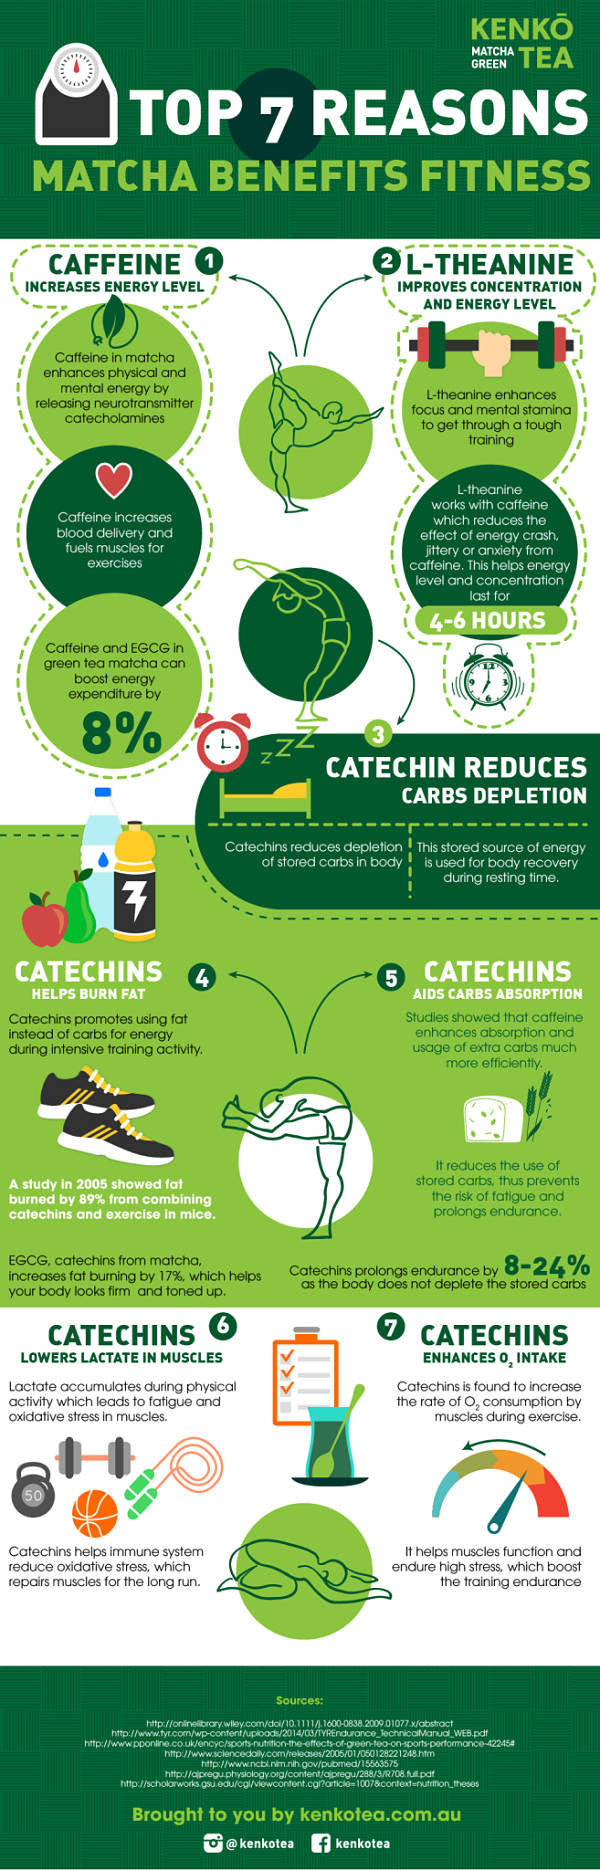 Matcha improves training performance infographic by Kenko Tea